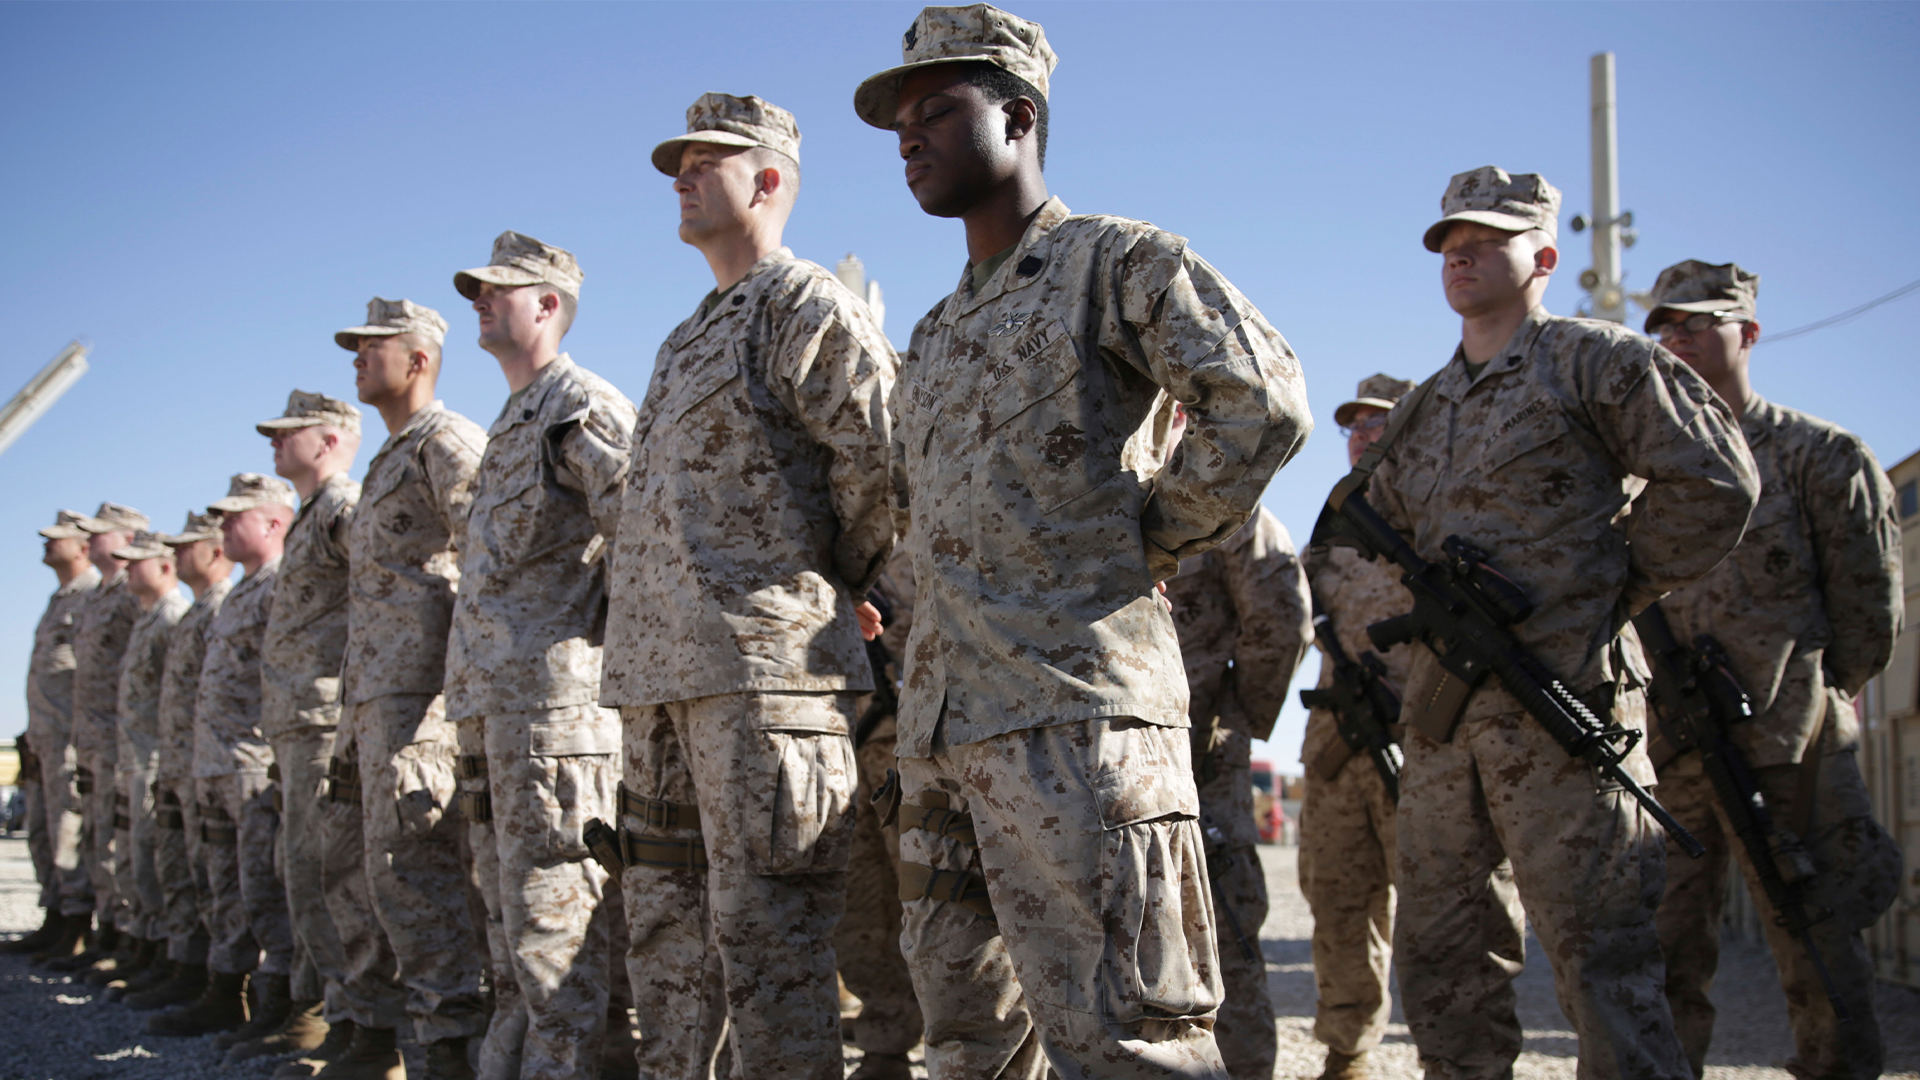 In this Jan. 15, 2018, file photo, U.S. Marines watch during the change of command ceremony at Task Force Southwest military field in Shorab military camp of Helmand province, Afghanistan. (AP Photo/Massoud Hossaini, File)